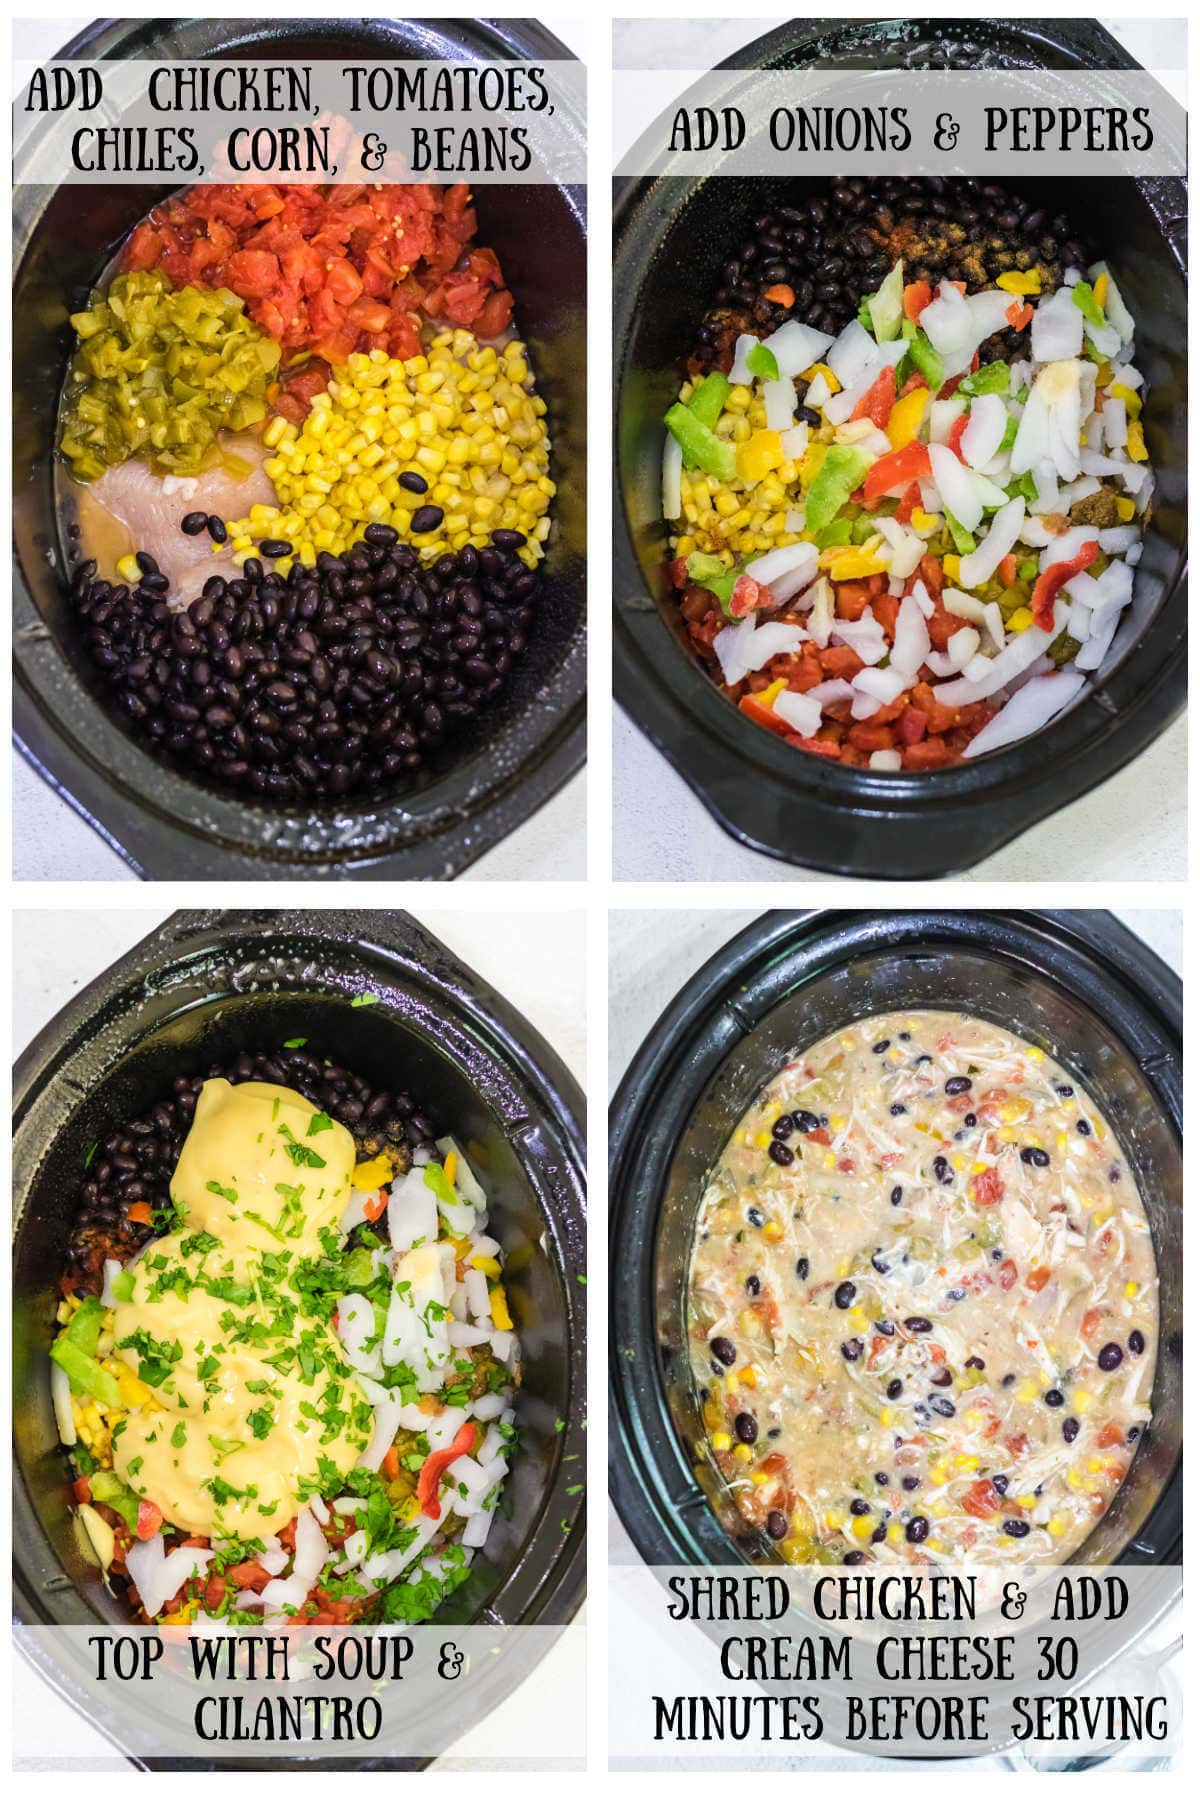 Step by step images for making this fiesta chicken reicpe.